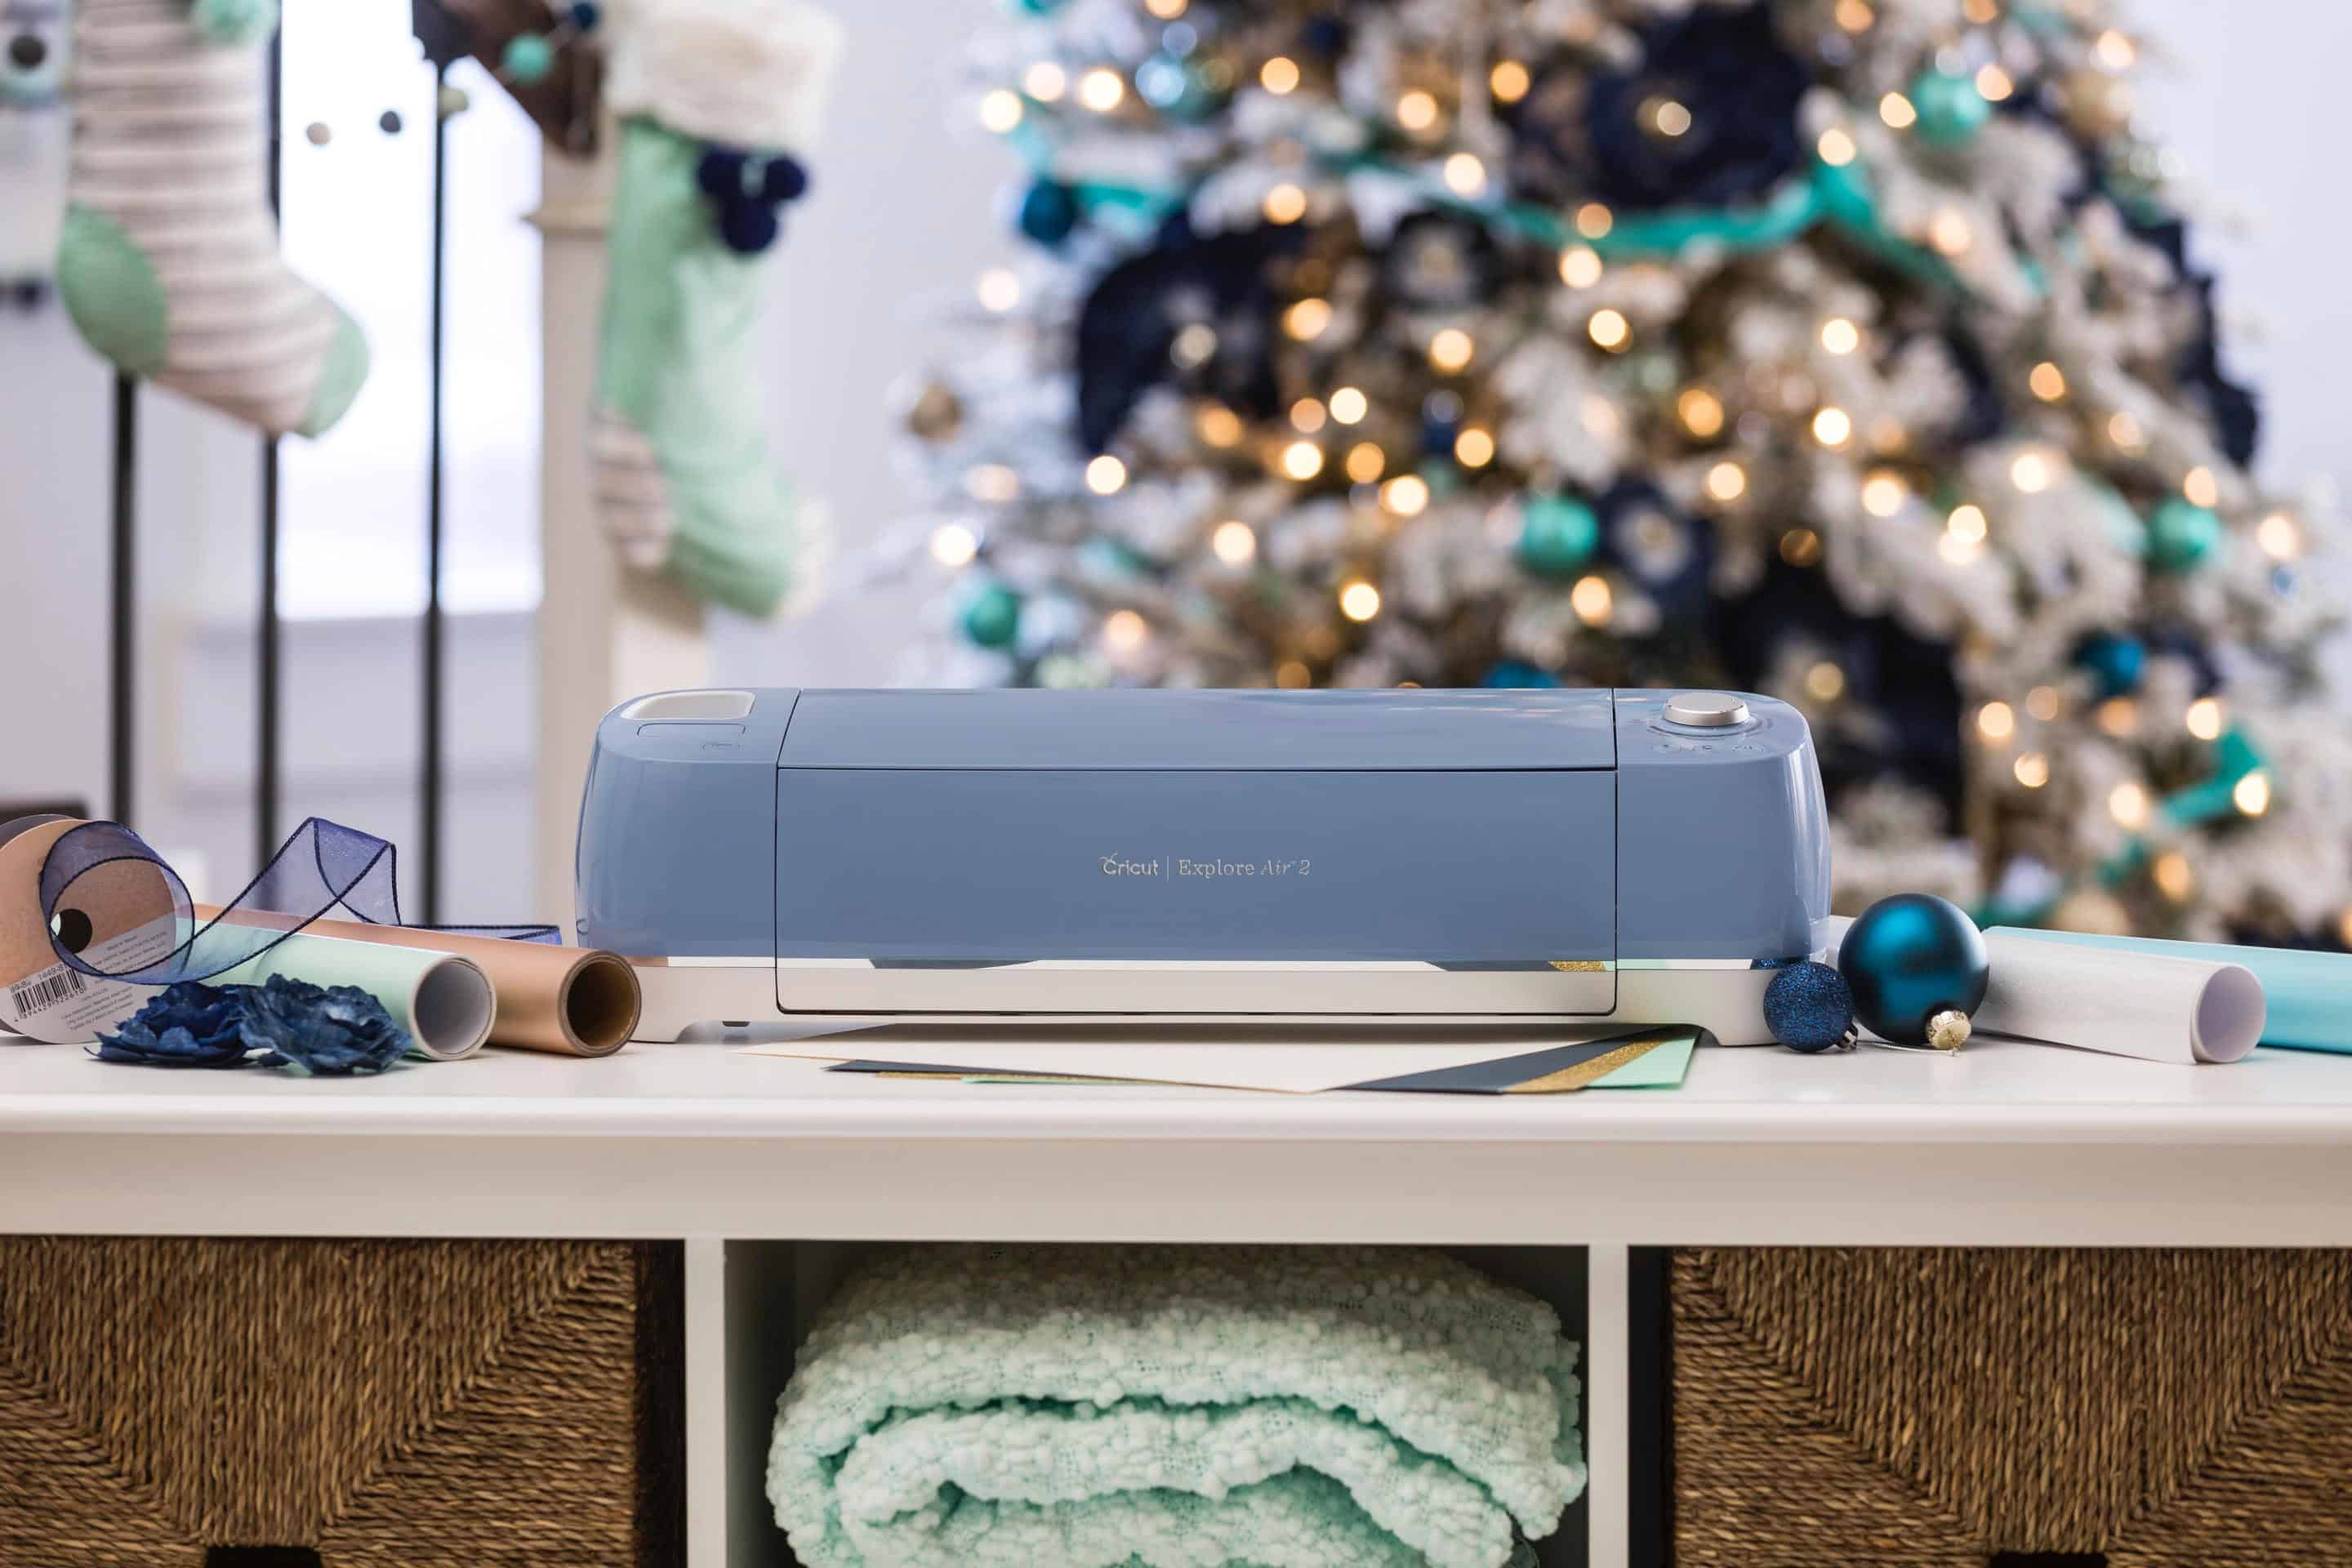 New Denim Cricut Explore Air 2 Bundle + 20 Ways It Can Make Your Life Easier